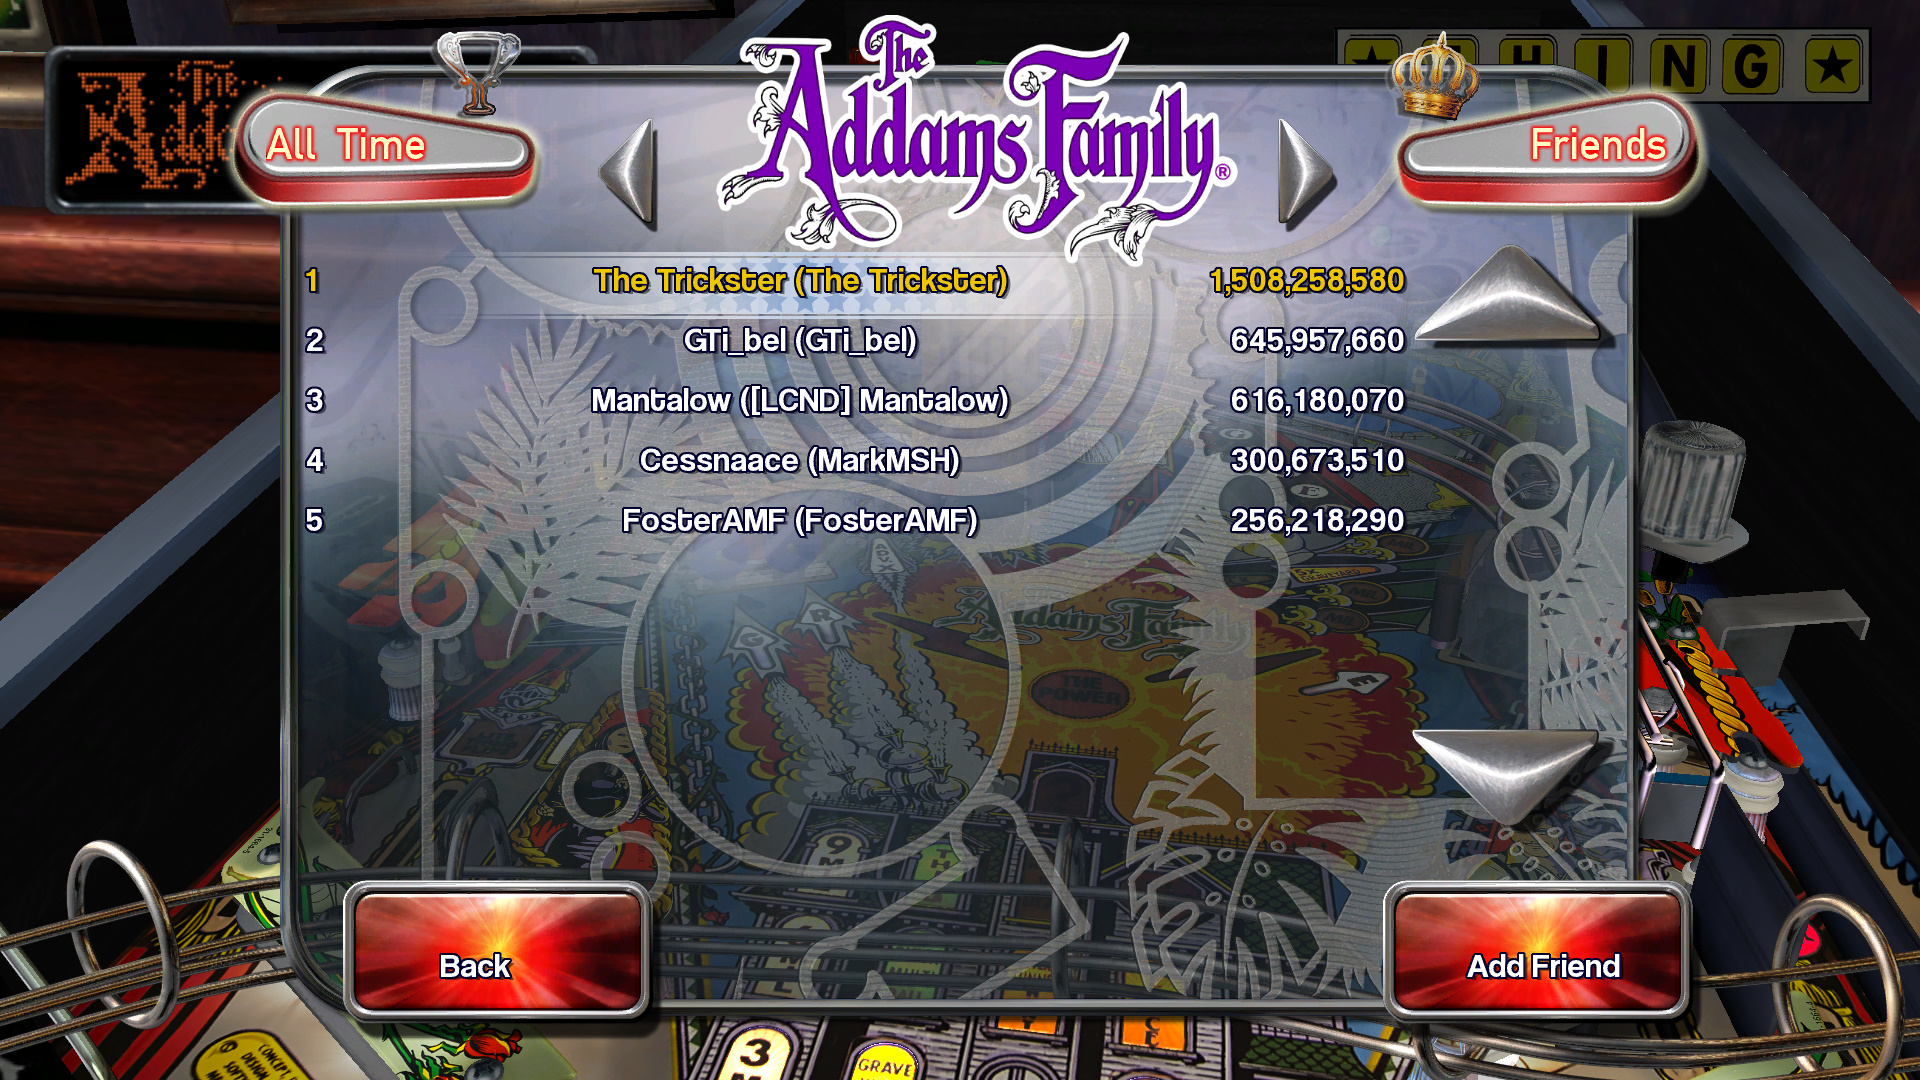 TheTrickster: Pinball Arcade: The Addams Family (PC) 1,508,258,580 points on 2015-11-12 18:13:05